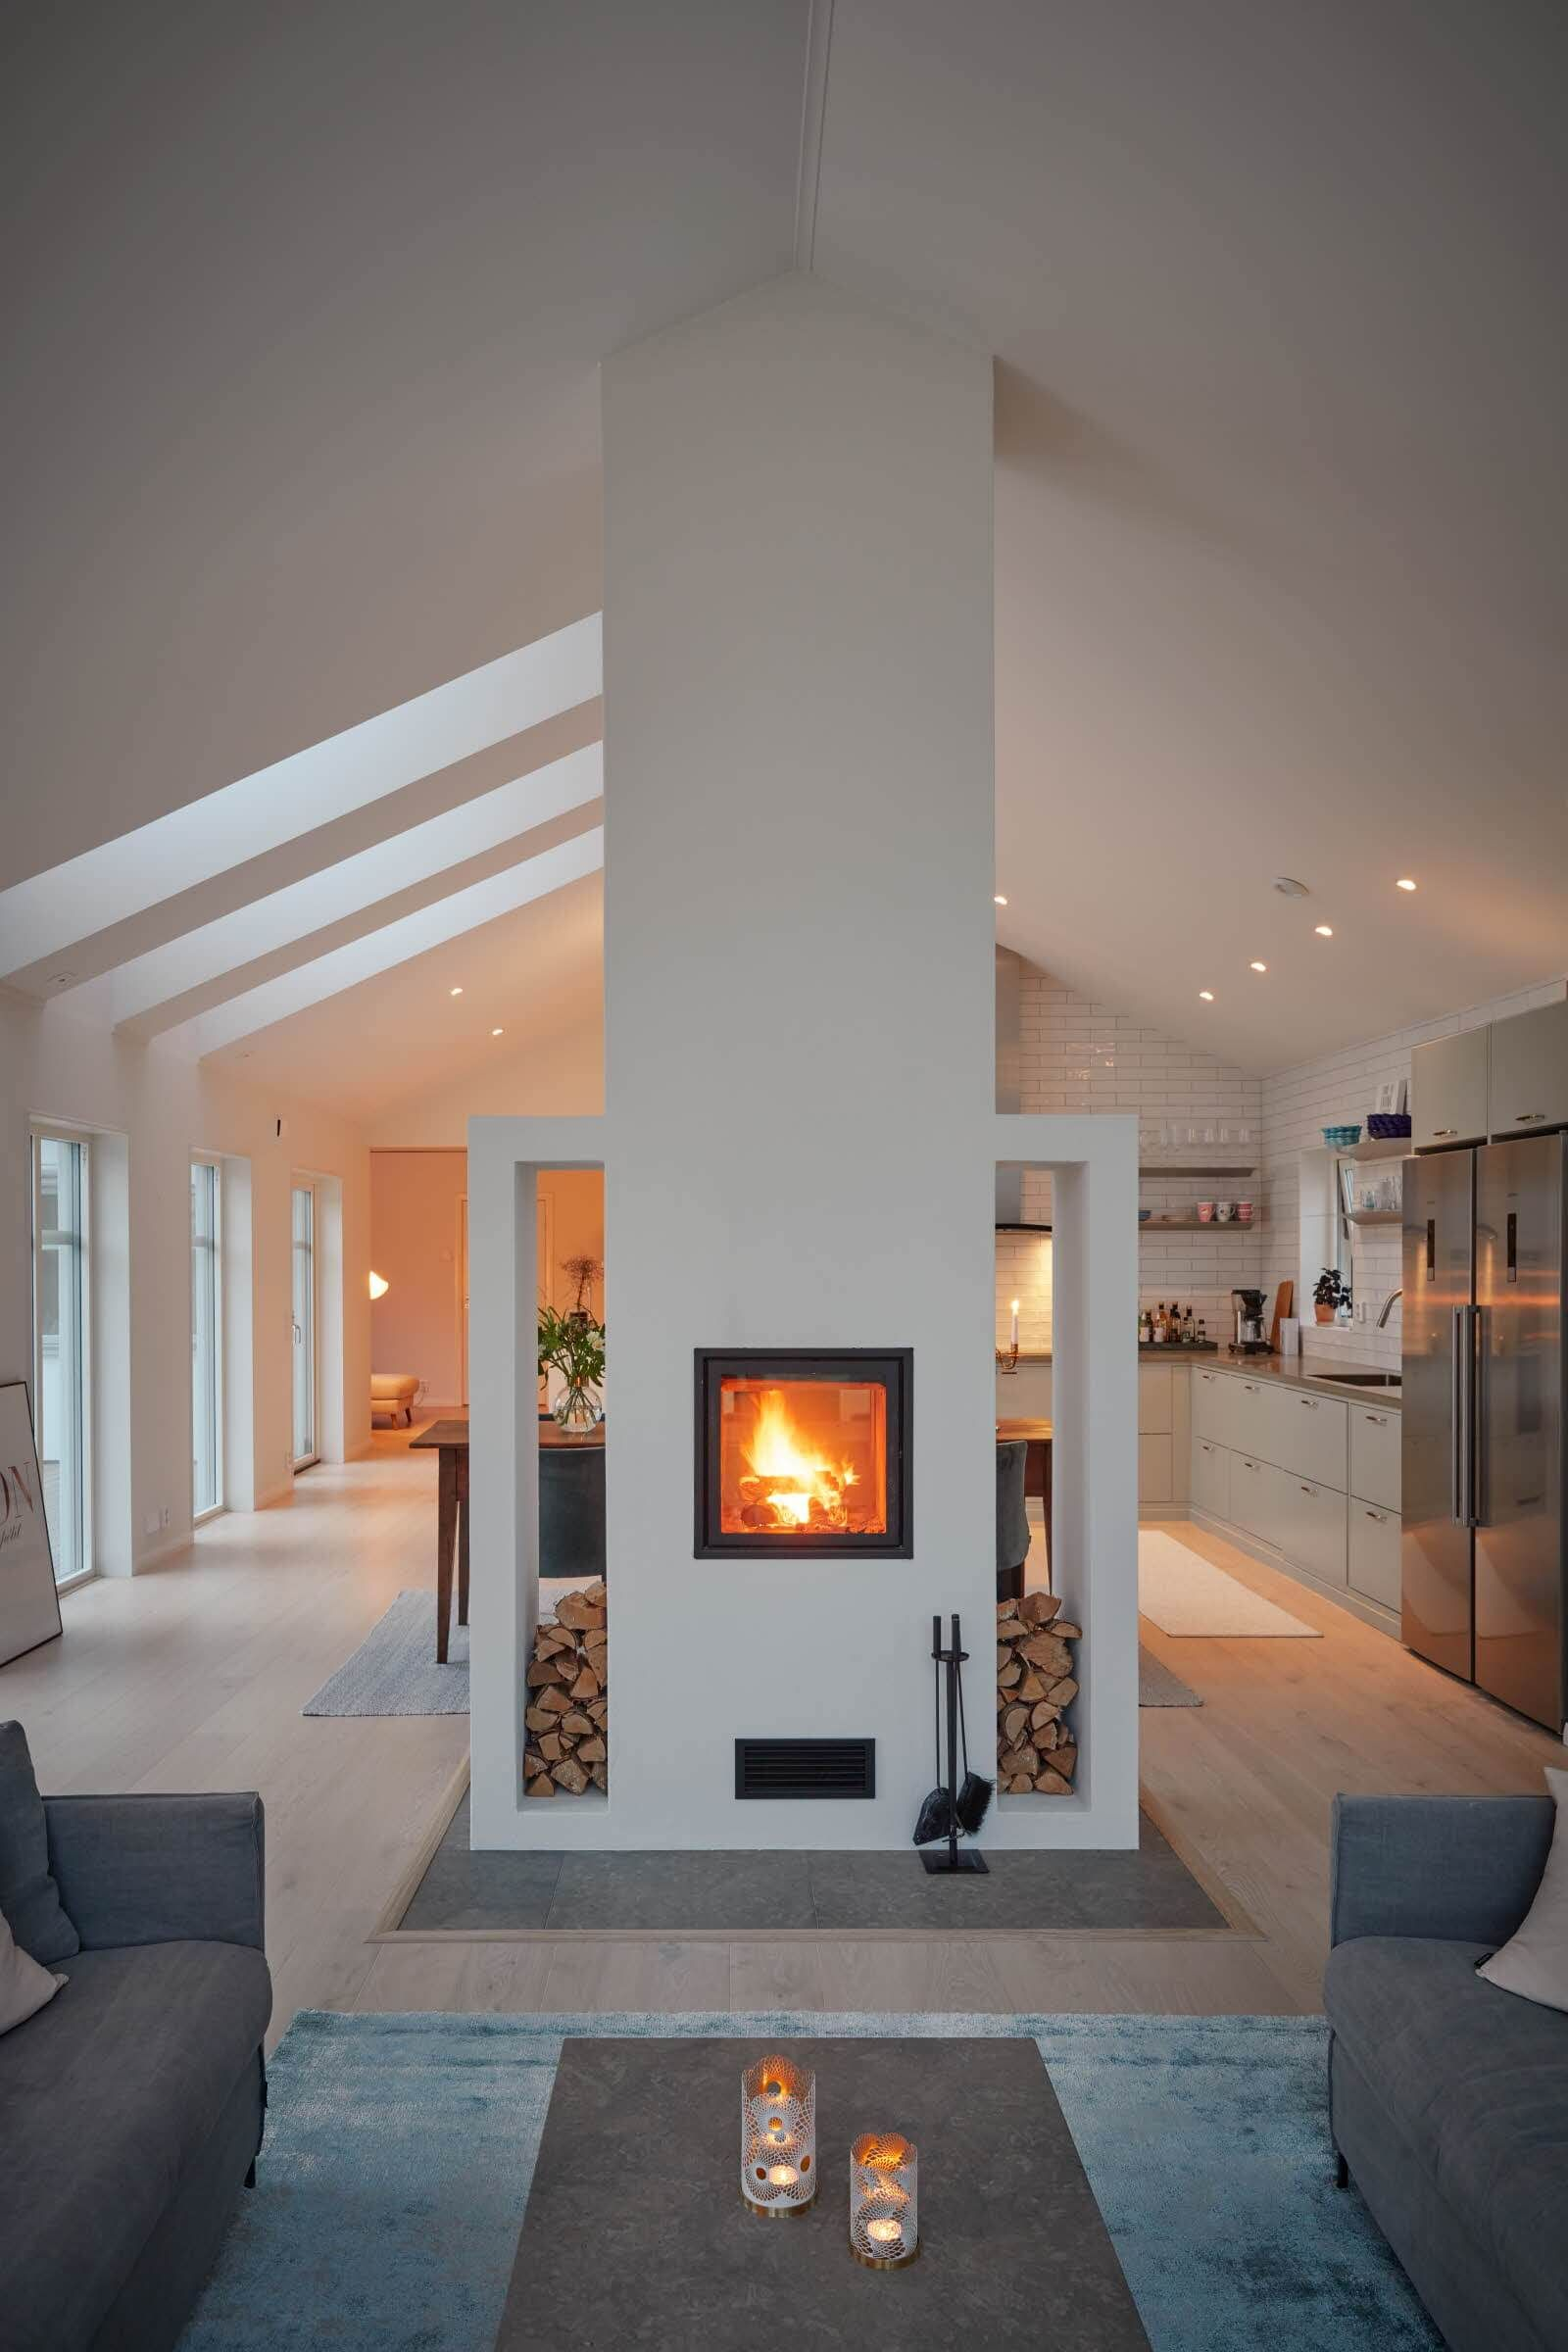 Interior Fireplace Unique 16 Gorgeous Double Sided Fireplace Design Ideas Take A Look